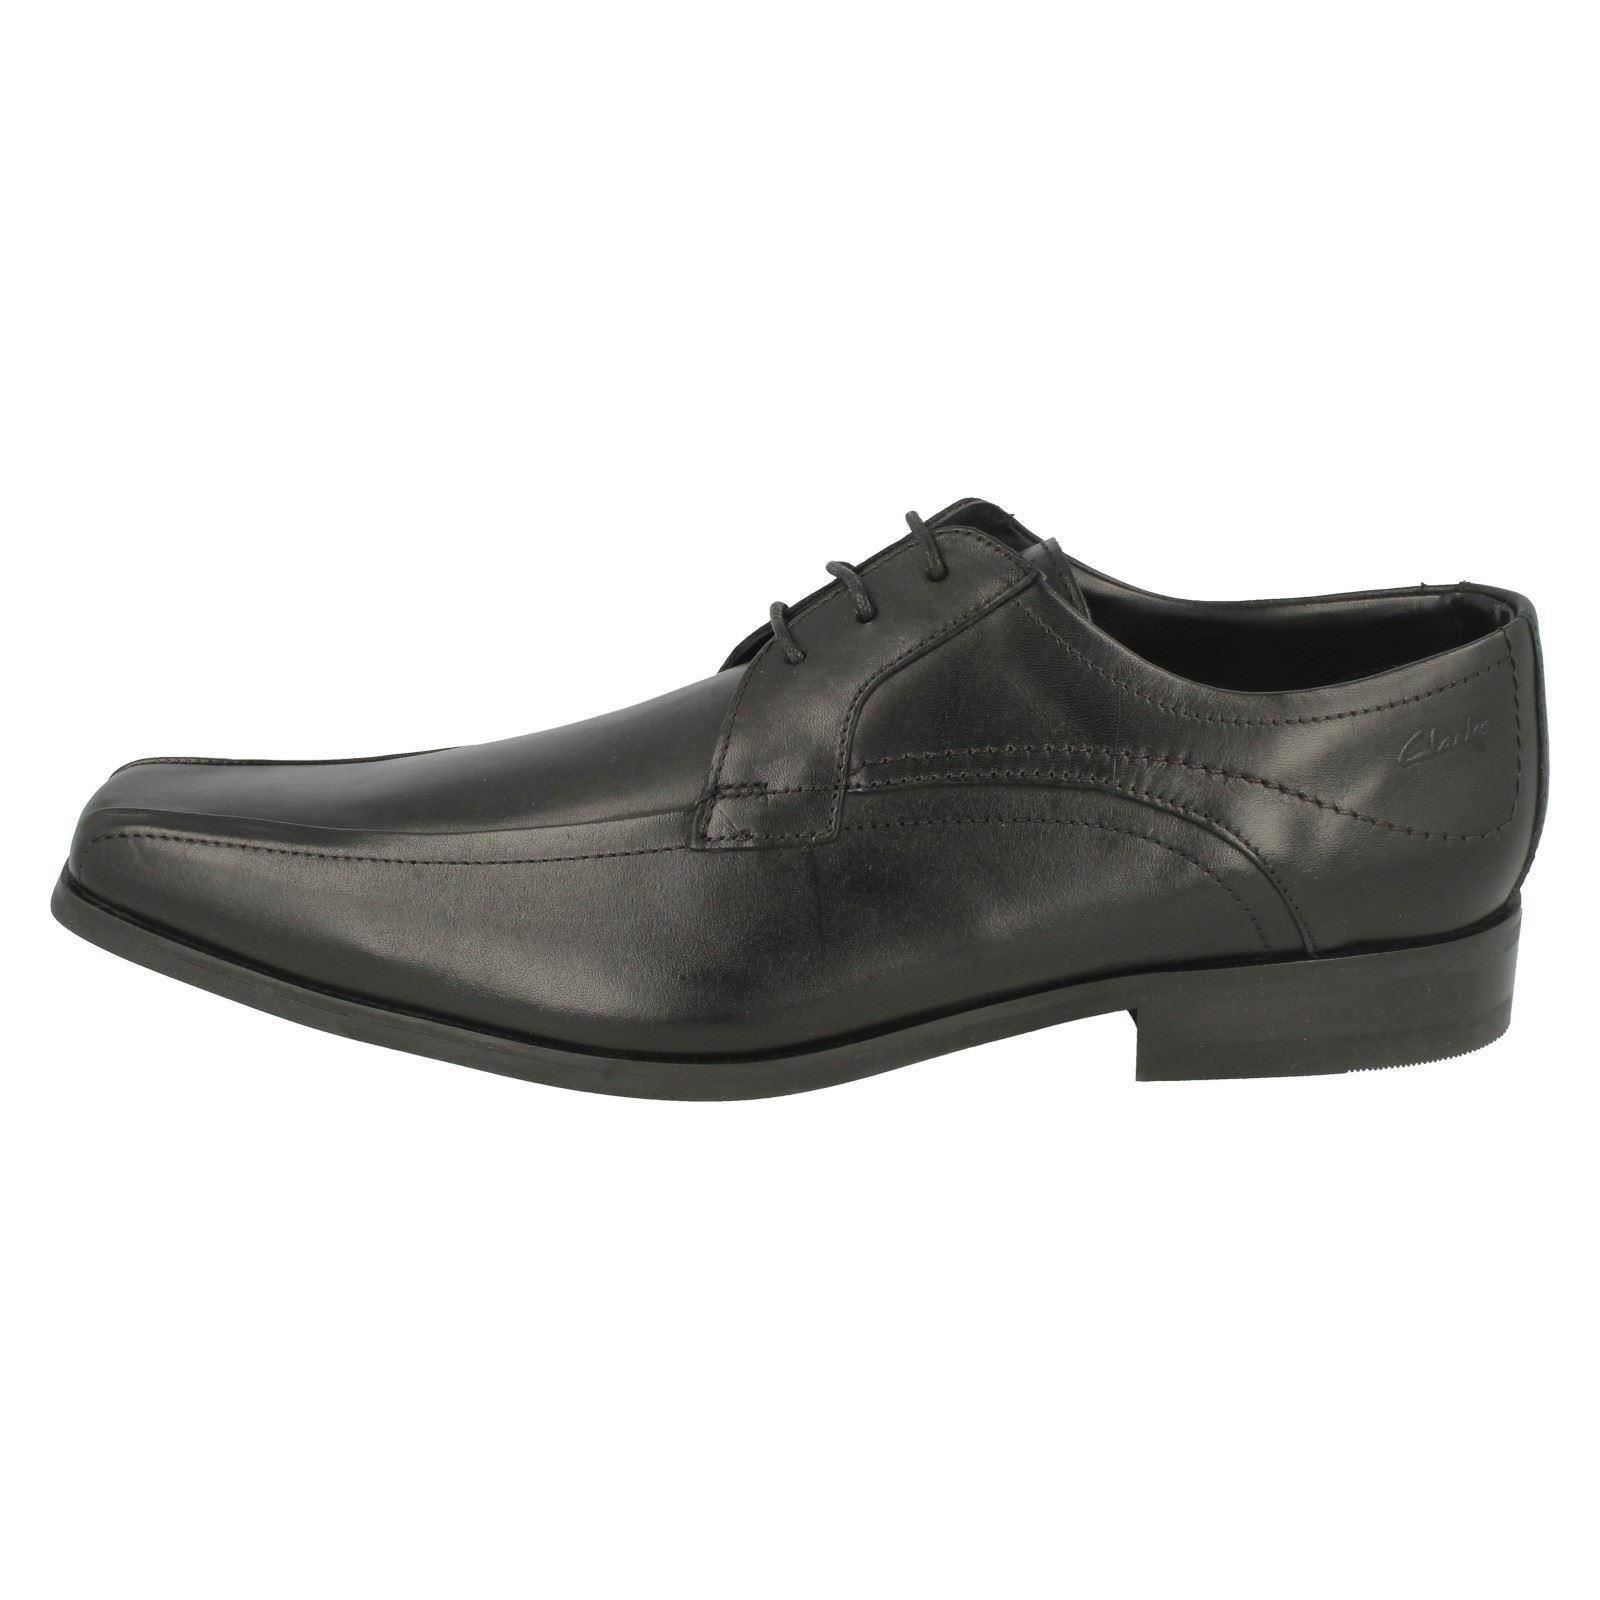 Mens Clarks Formal Park Lace Up Schuhes Croyden Park Formal aa0488